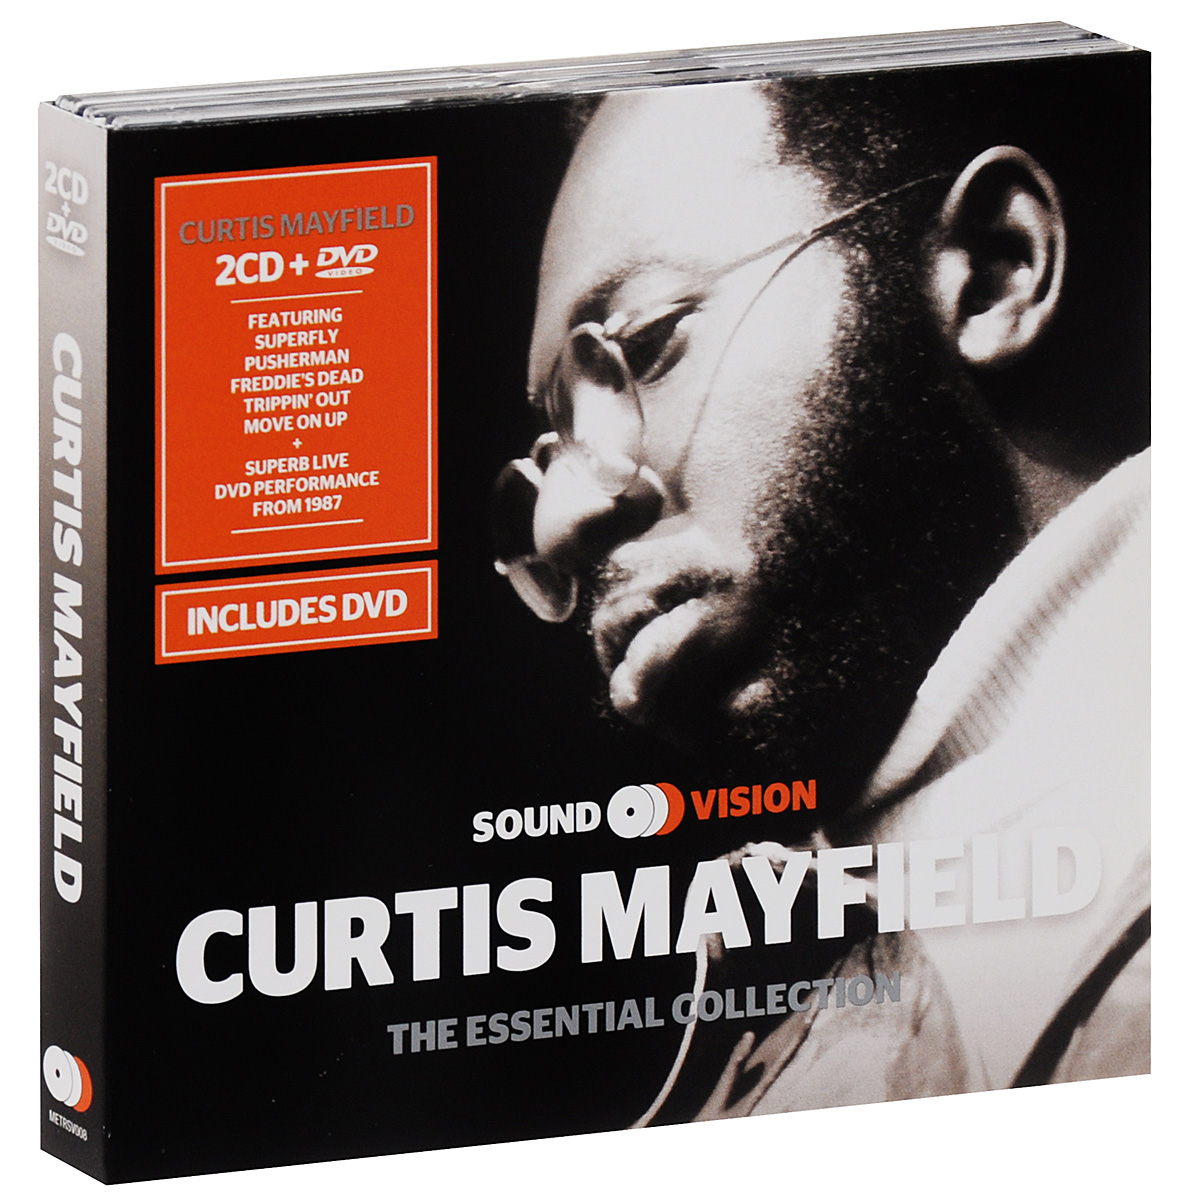 Кертис Мэйфилд Curtis Mayfield. The Essential Collection (2 CD + DVD) cd phil collins the essential going back